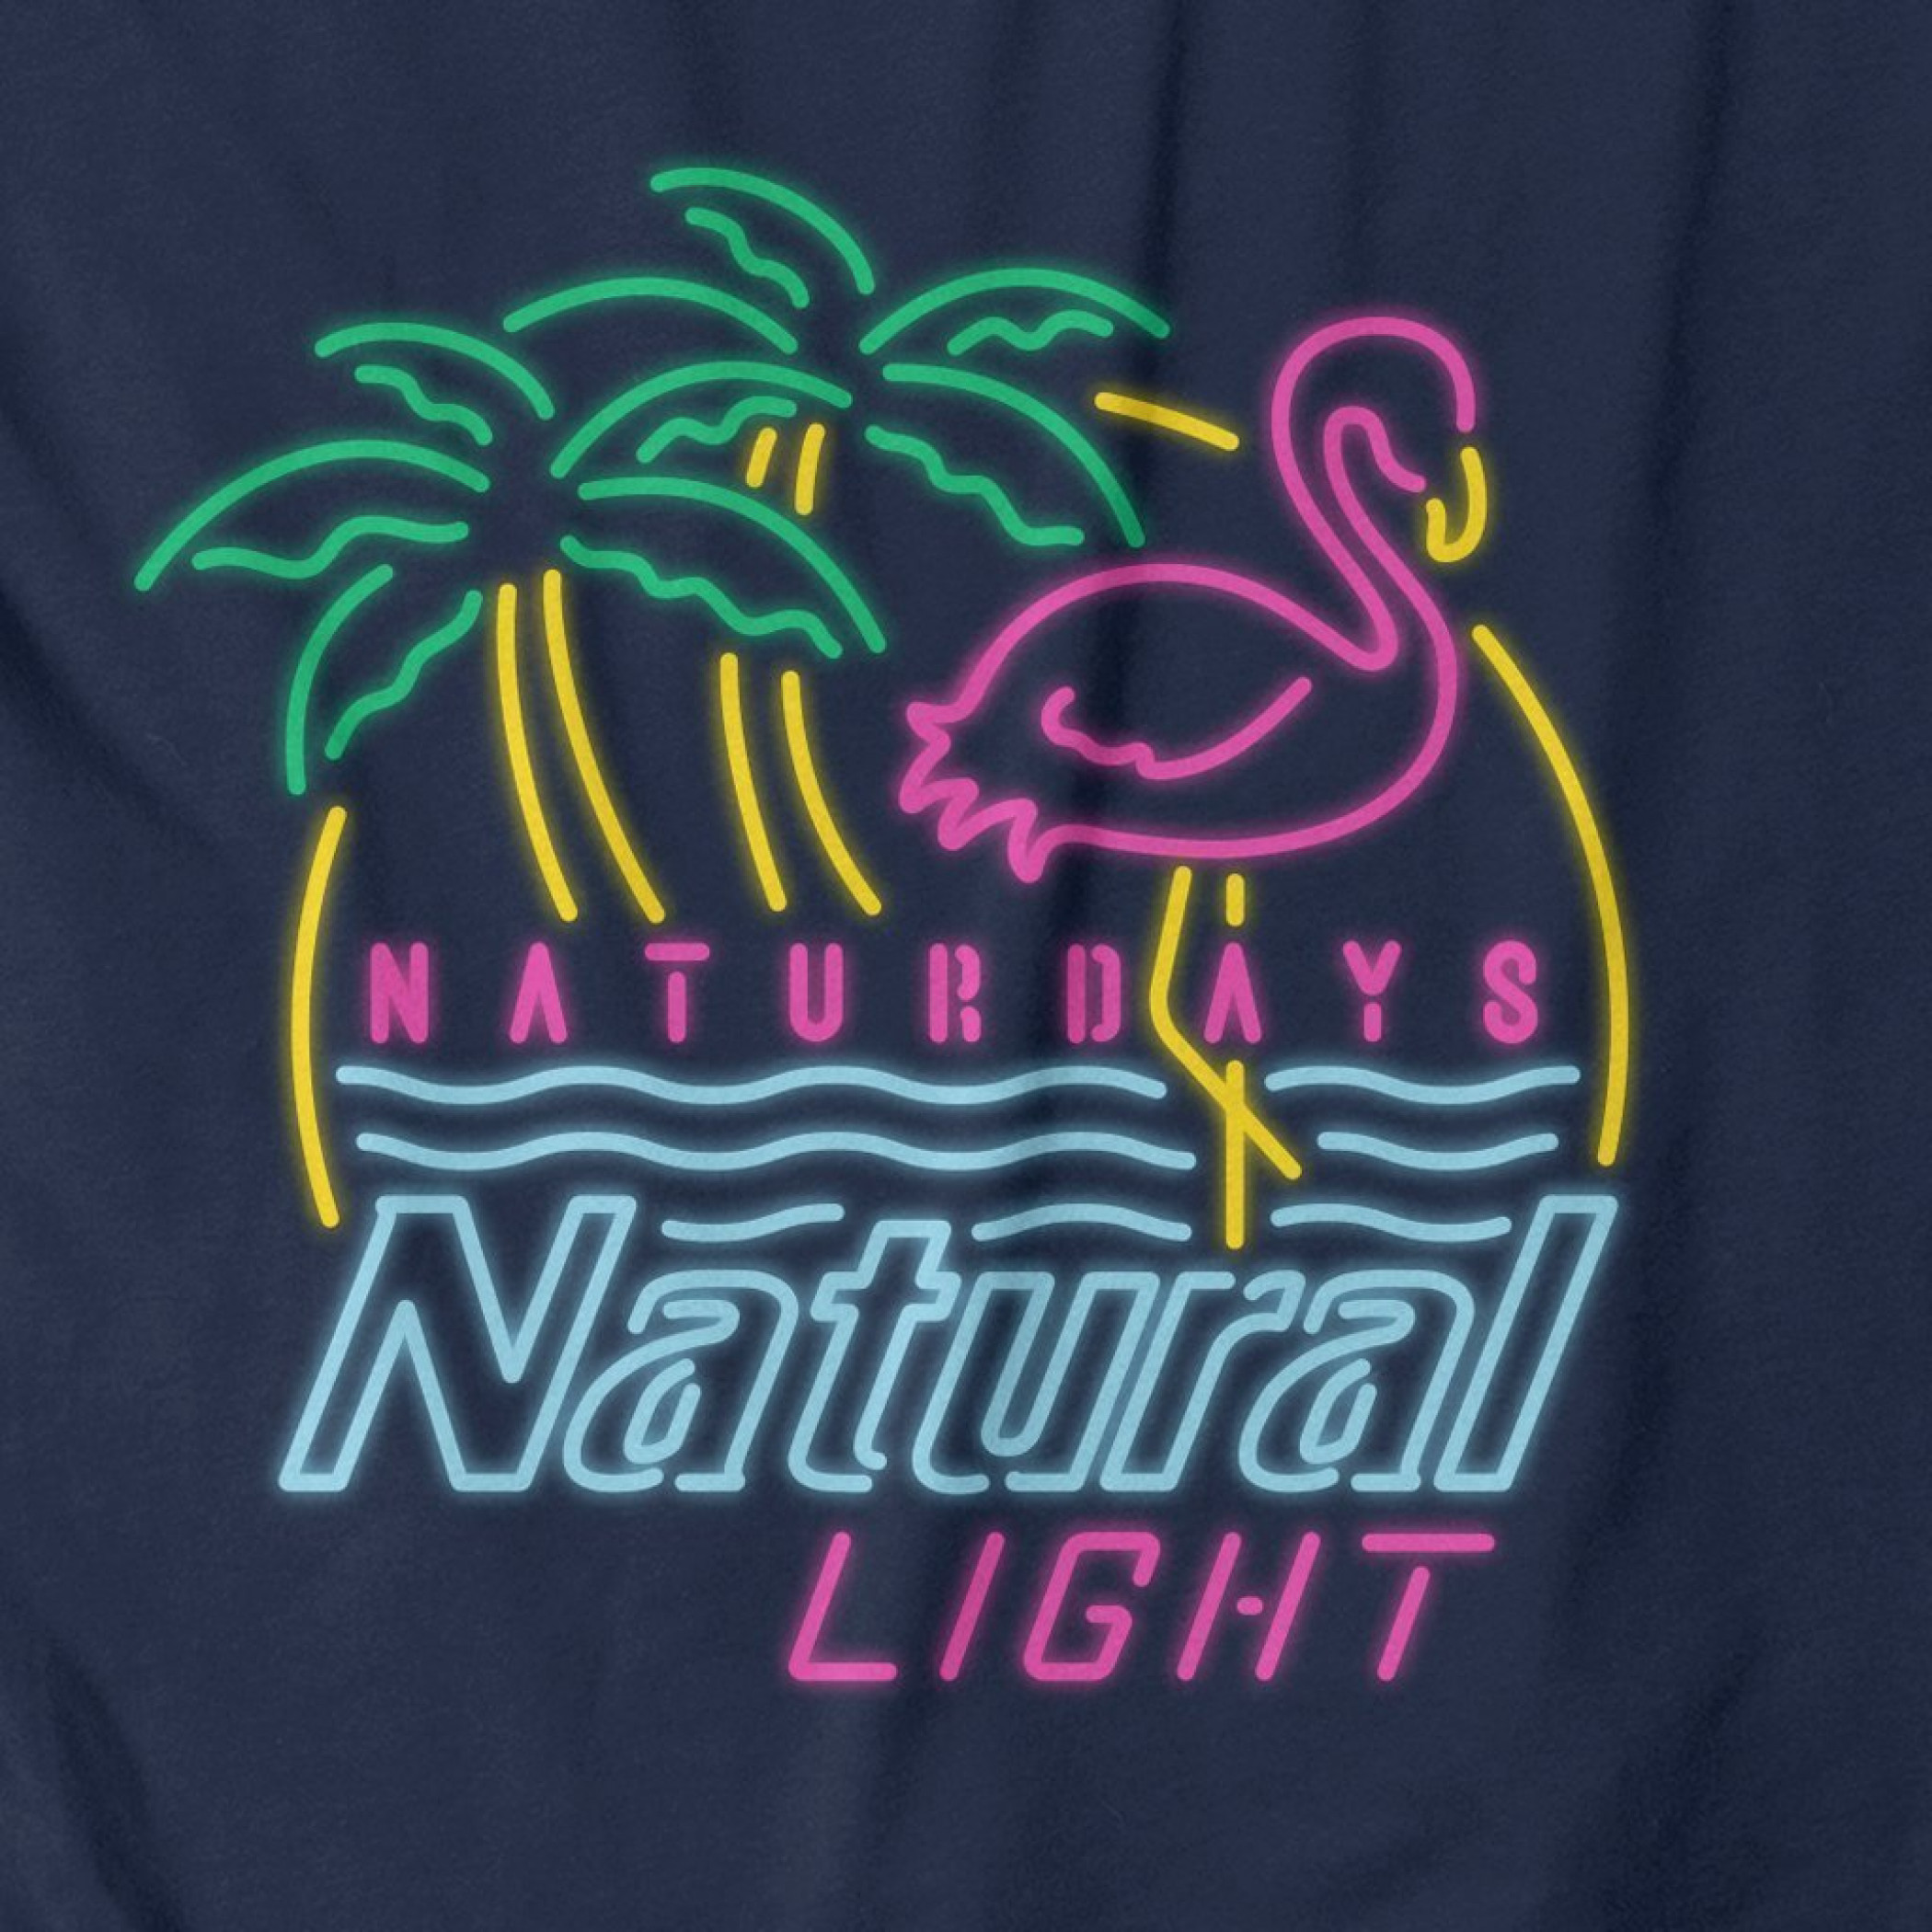 Natural Light Beer Naturdays Neon Navy Men's Cotton Tank Top